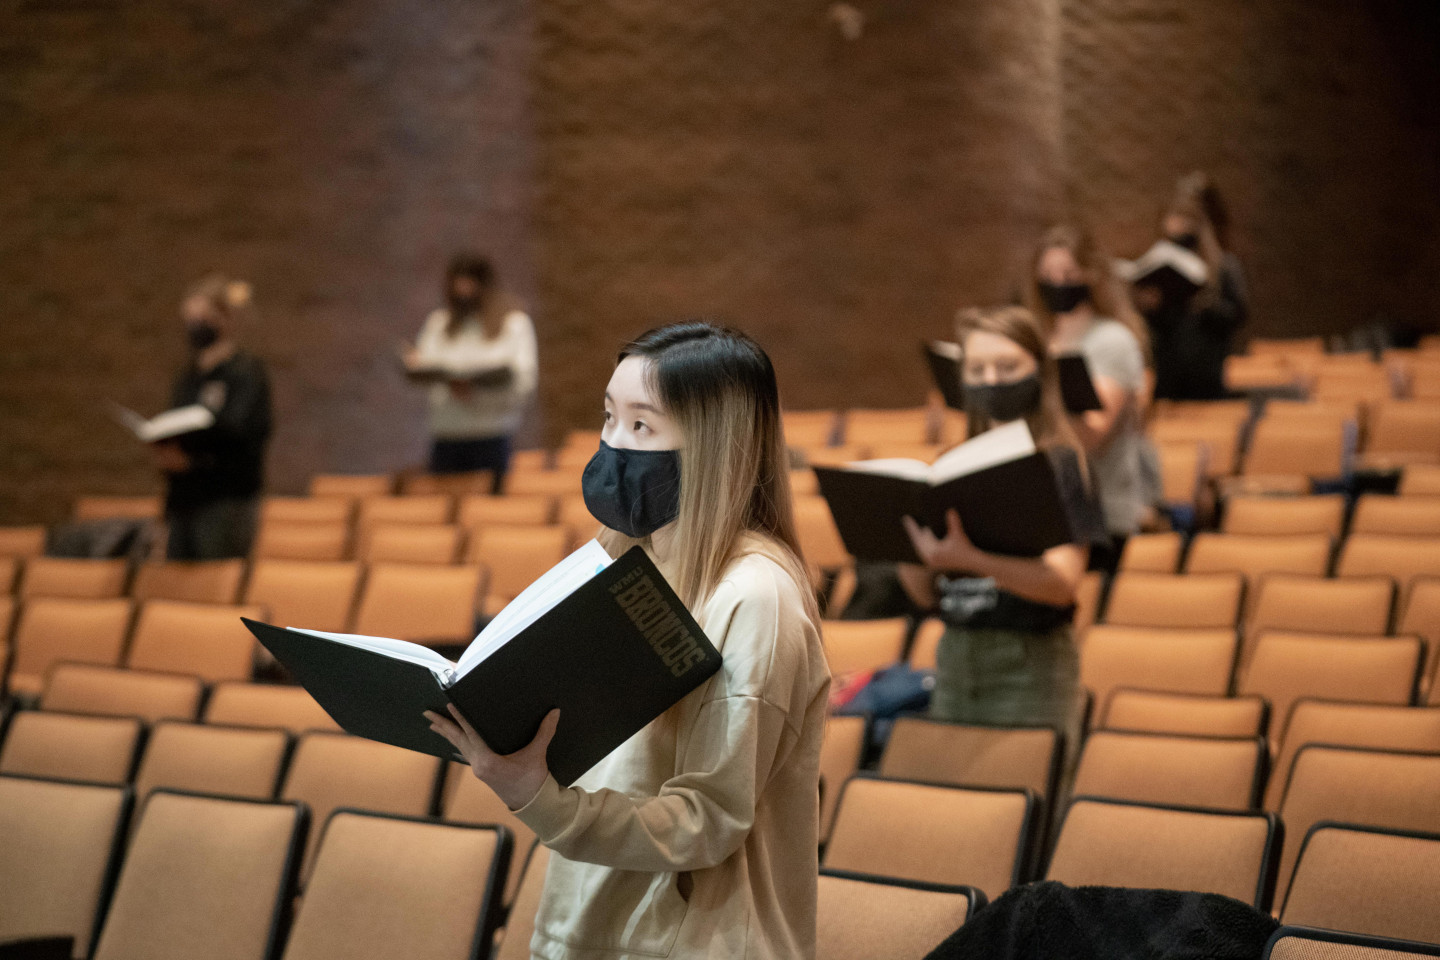 Choir students hold books of music and sing in an auditorium.